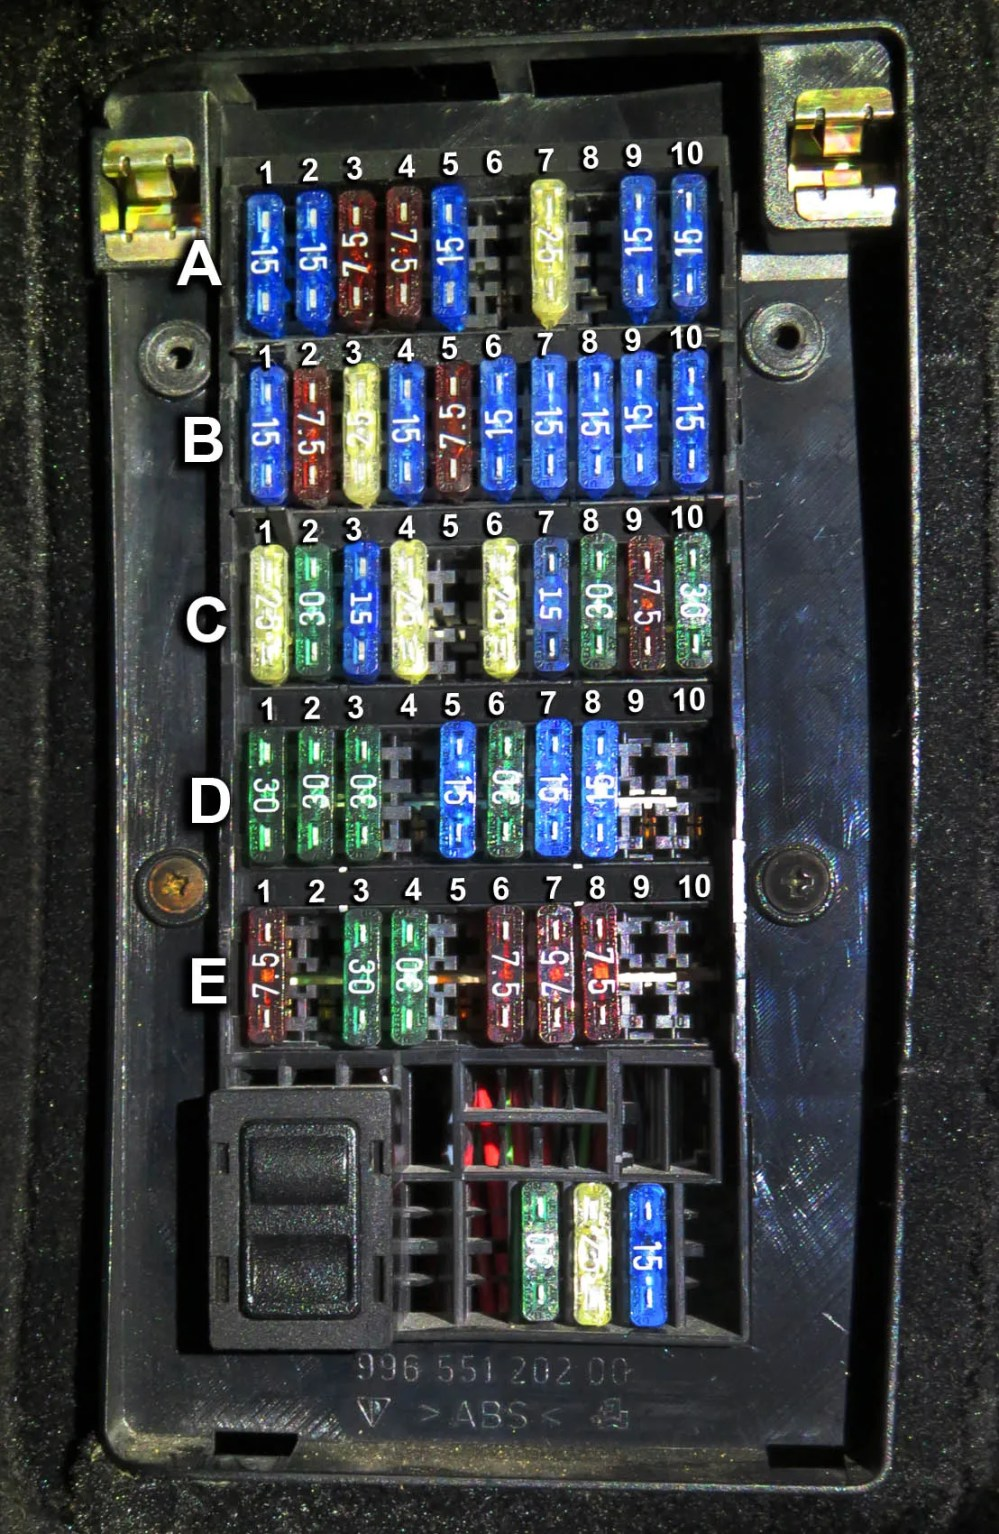 medium resolution of interior heater fan blower not working no power 986 forum for 1999 mitsubishi eclipse fuse diagram 1999 porsche boxster fuse diagram